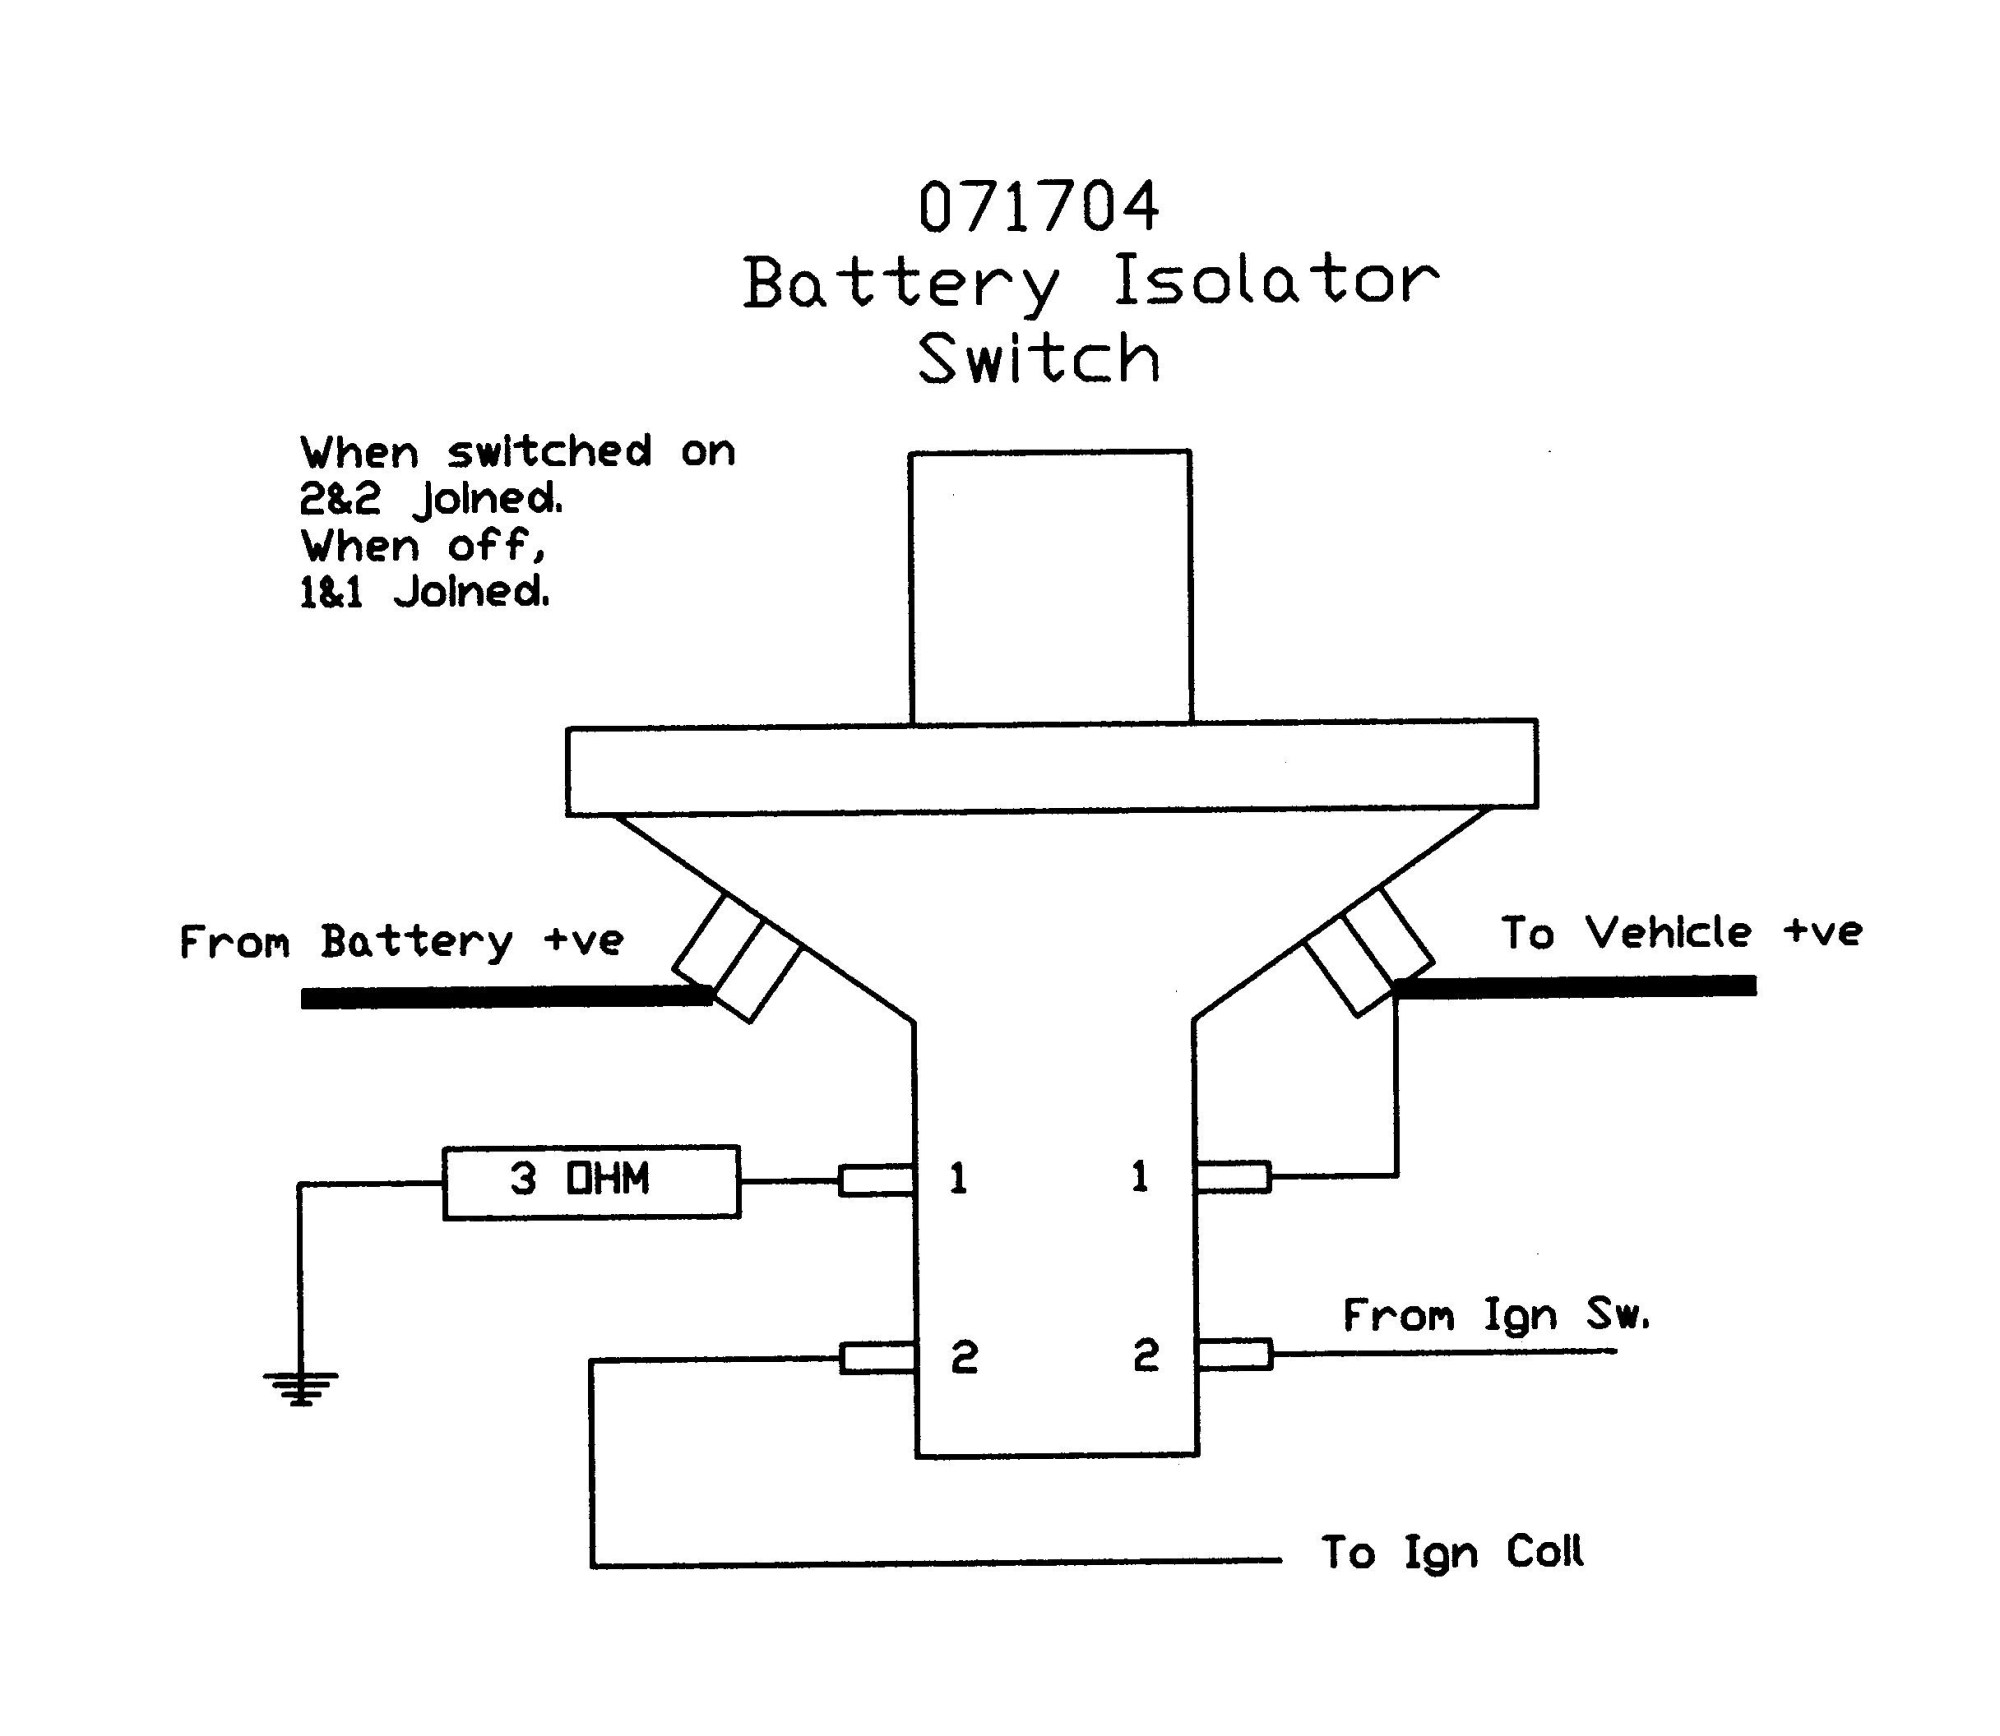 hight resolution of 071704 wiring diagram